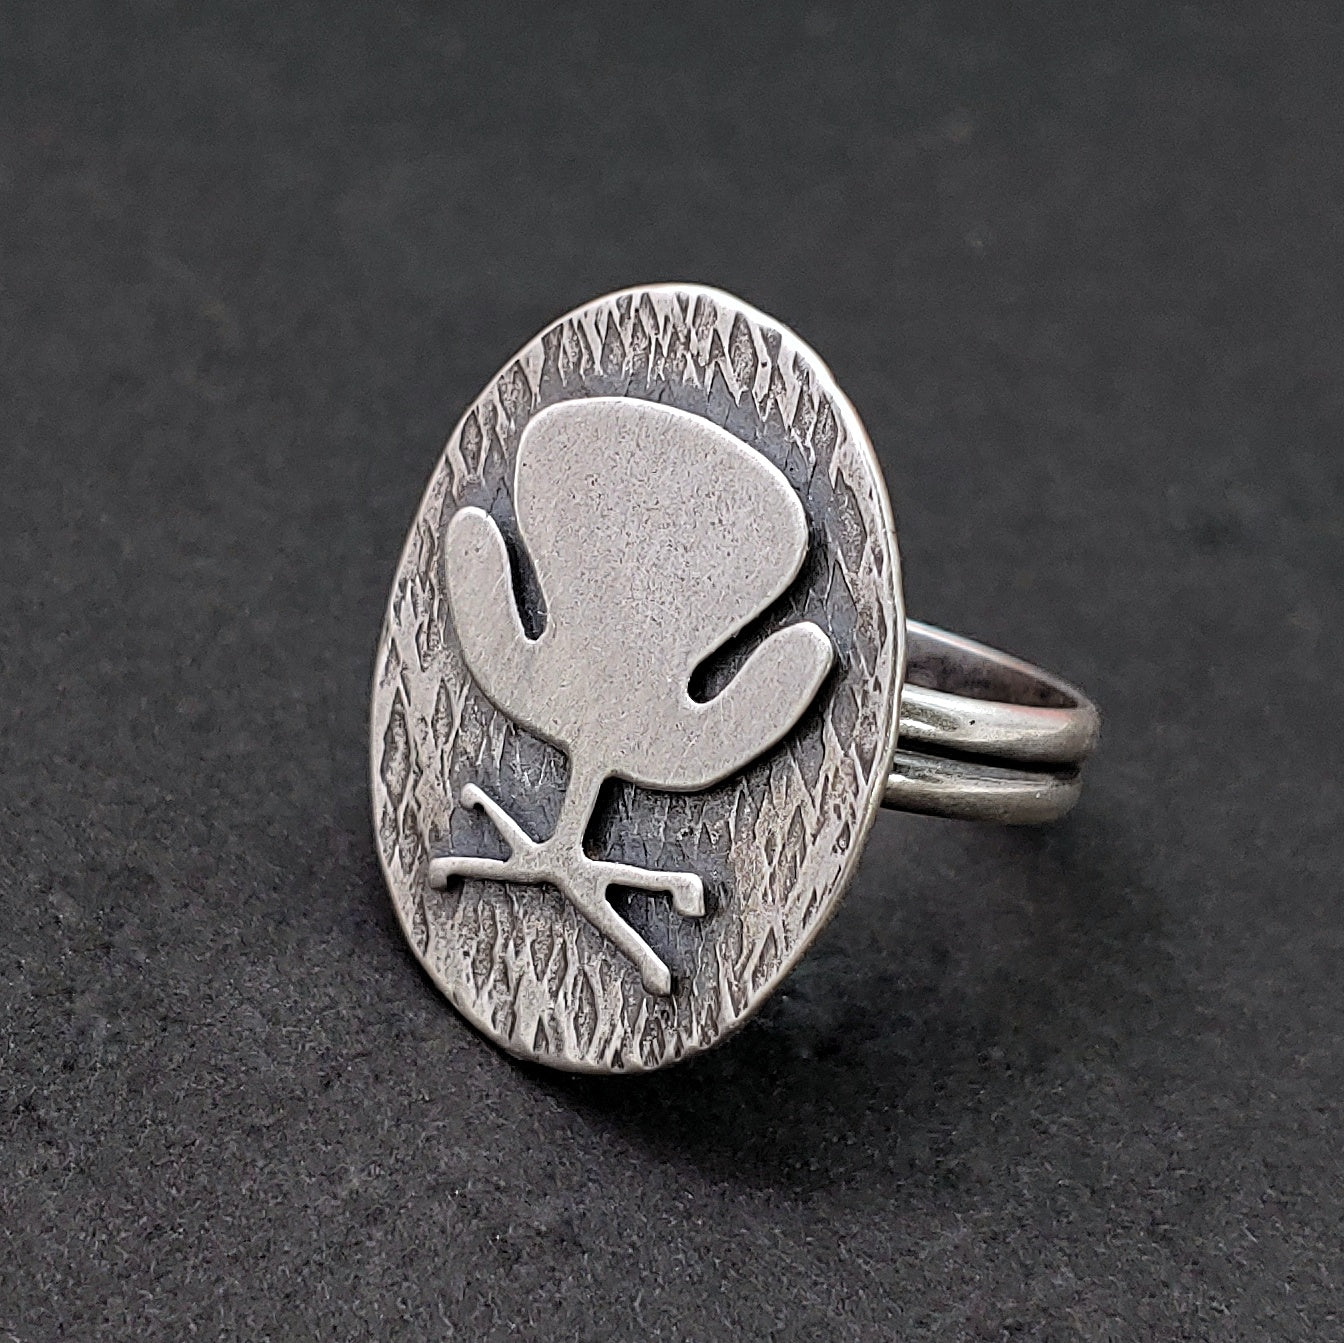 Swan chair ring in sterling silver